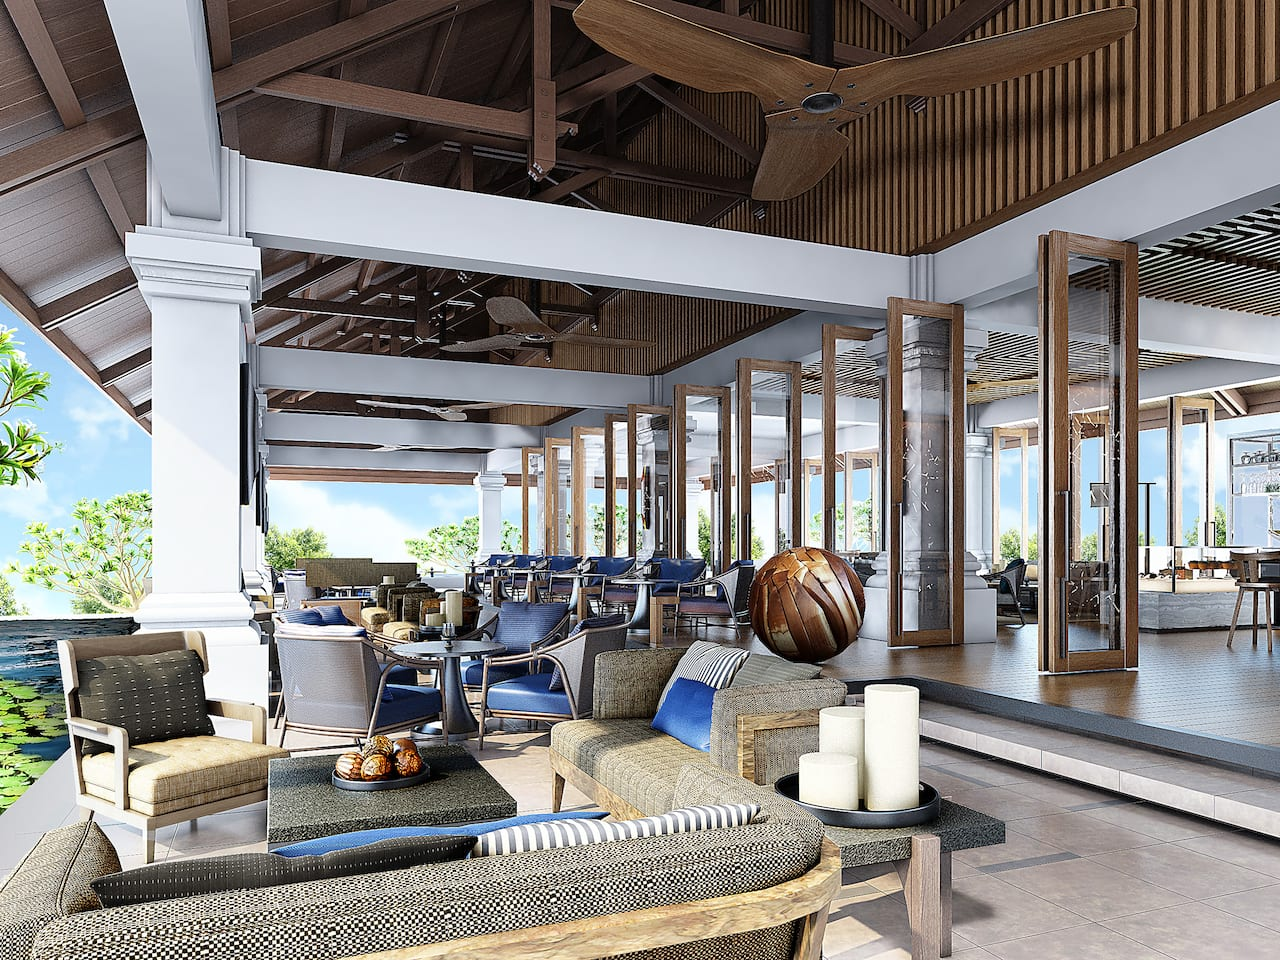 Veranda Lounge and Bar Nusa Dua Bali, Grand Hyatt